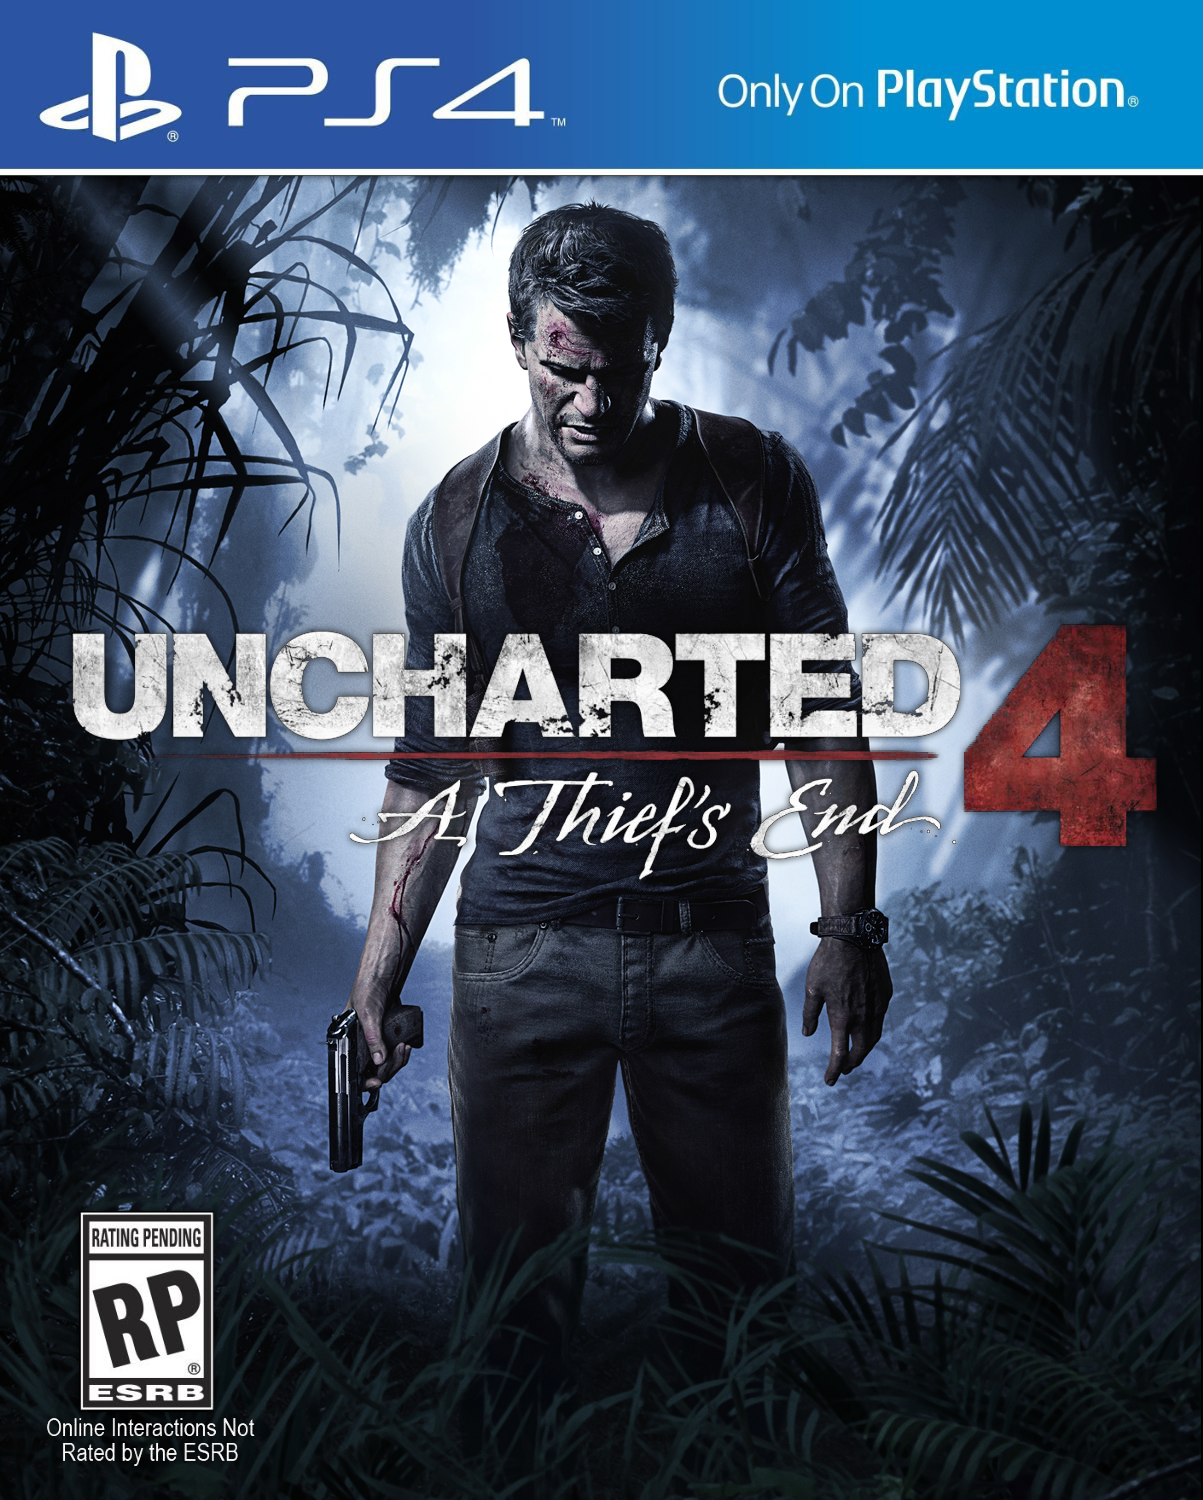 http://ps4.downloadha.com/October%202016/Uncharted%204/uncharted-4-ps4-cover-large.jpg